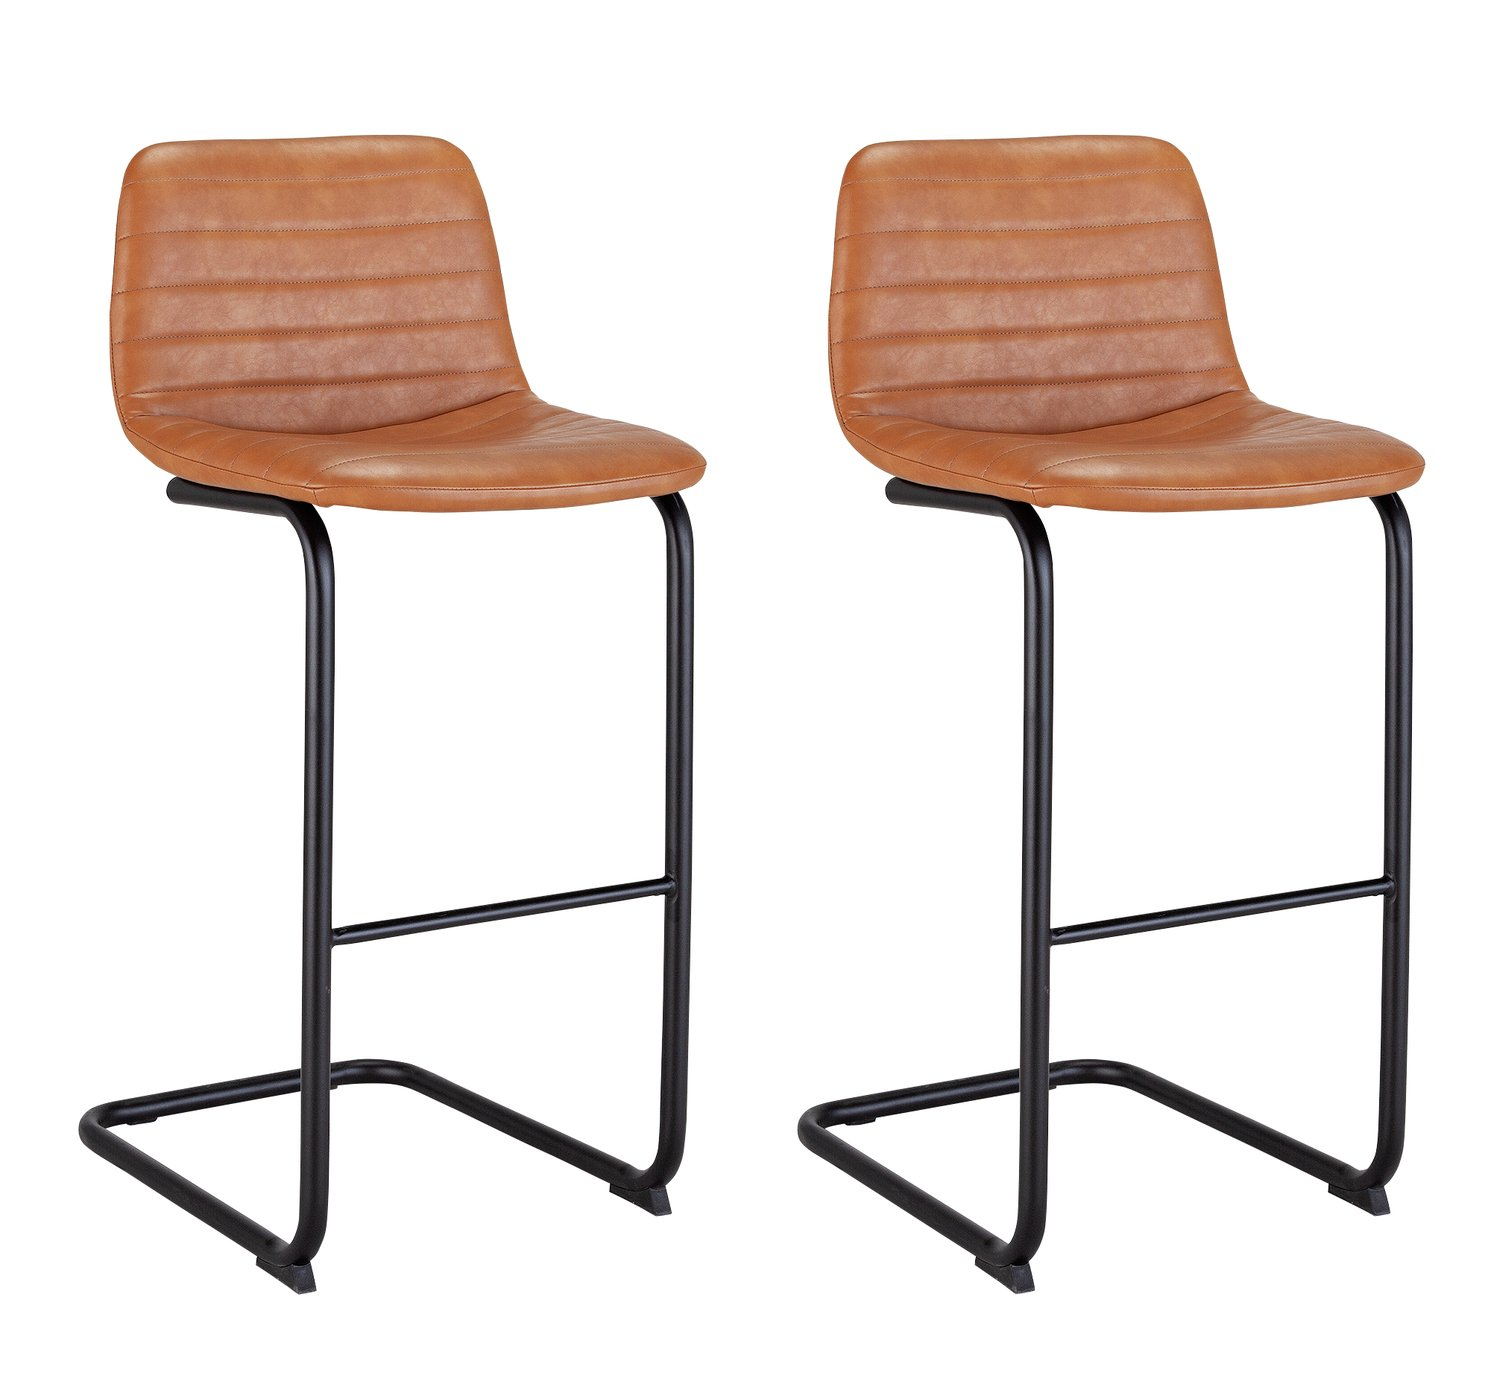 Argos Home Logan Pair of Faux Leather Bar Stools - Tan